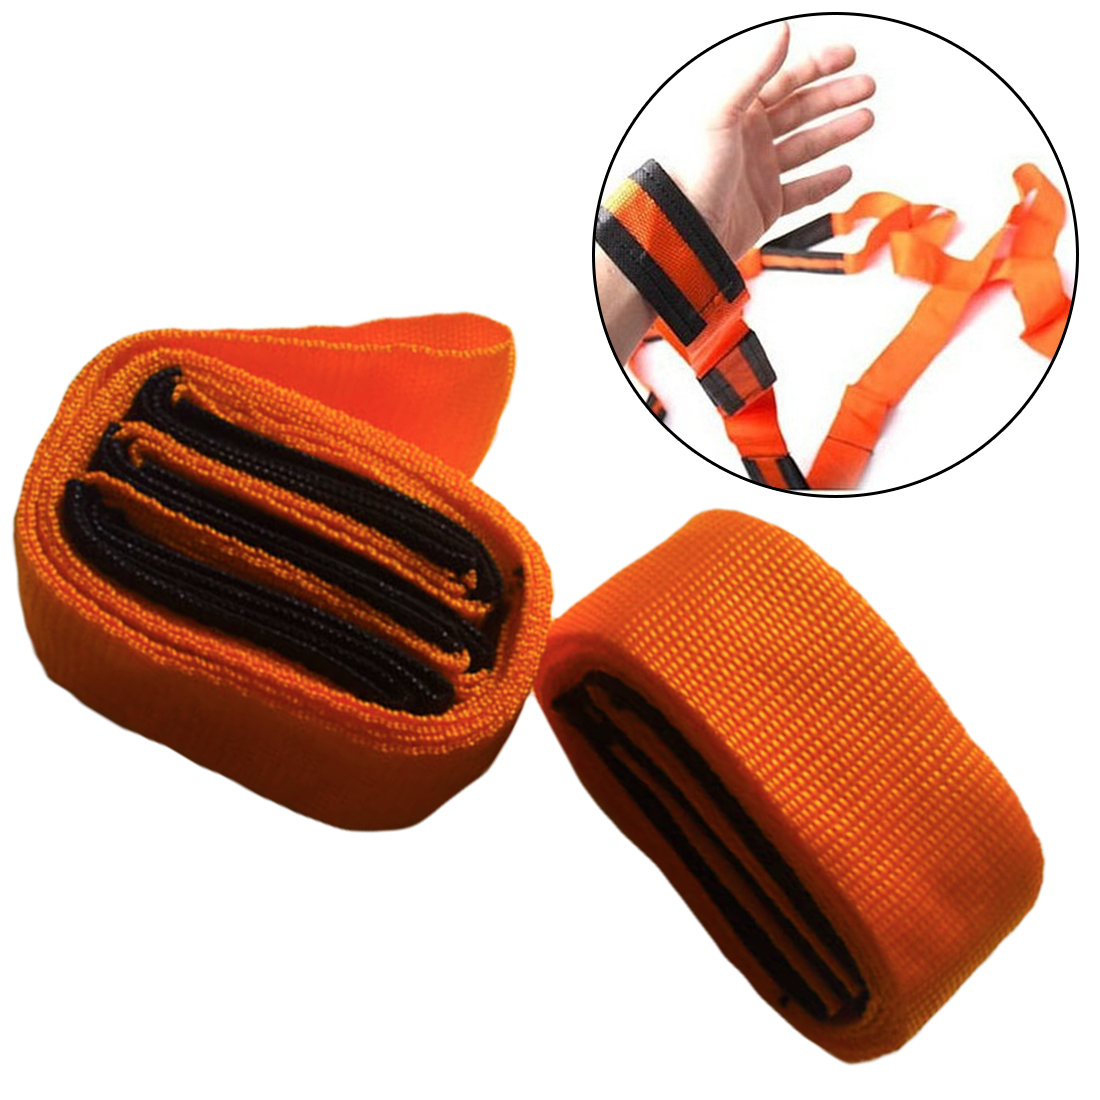 Furniture Transport Belt Hand Tool 2pcs Forearm Lifting Moving Strap Easier Carry Rope Cheap Price Straps